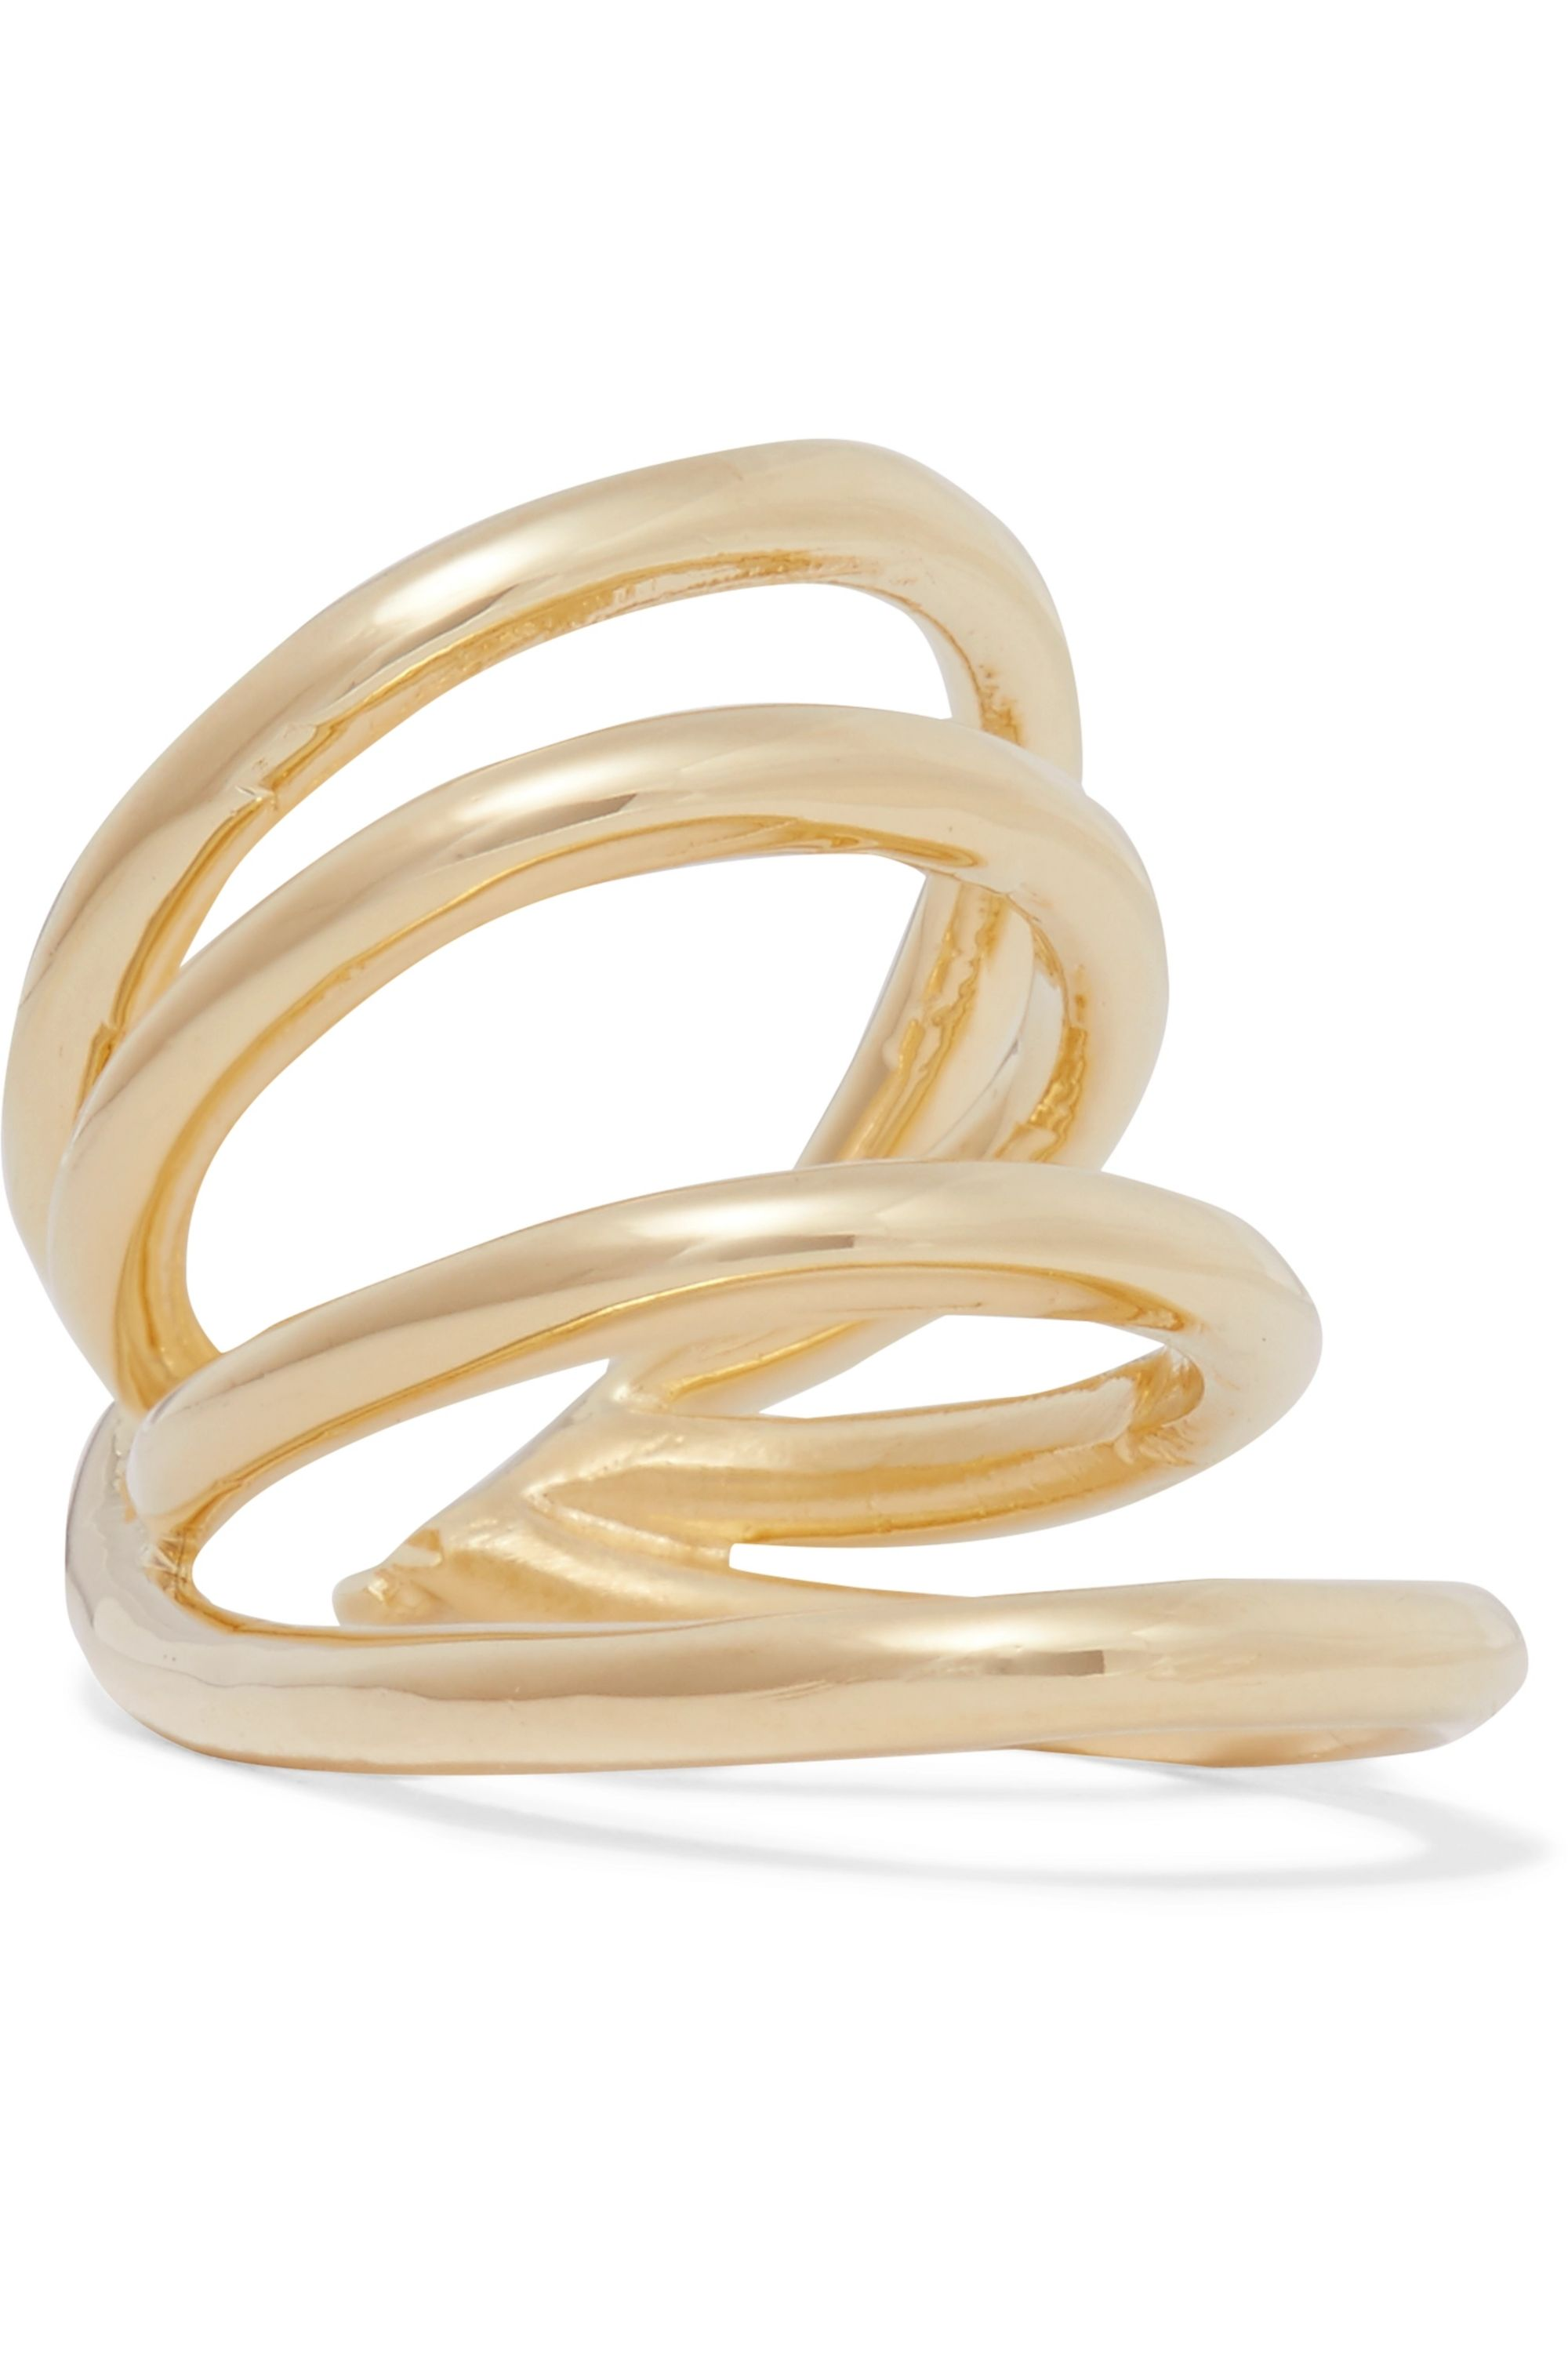 Jennifer Fisher Overlap Circle gold-plated pinky ring